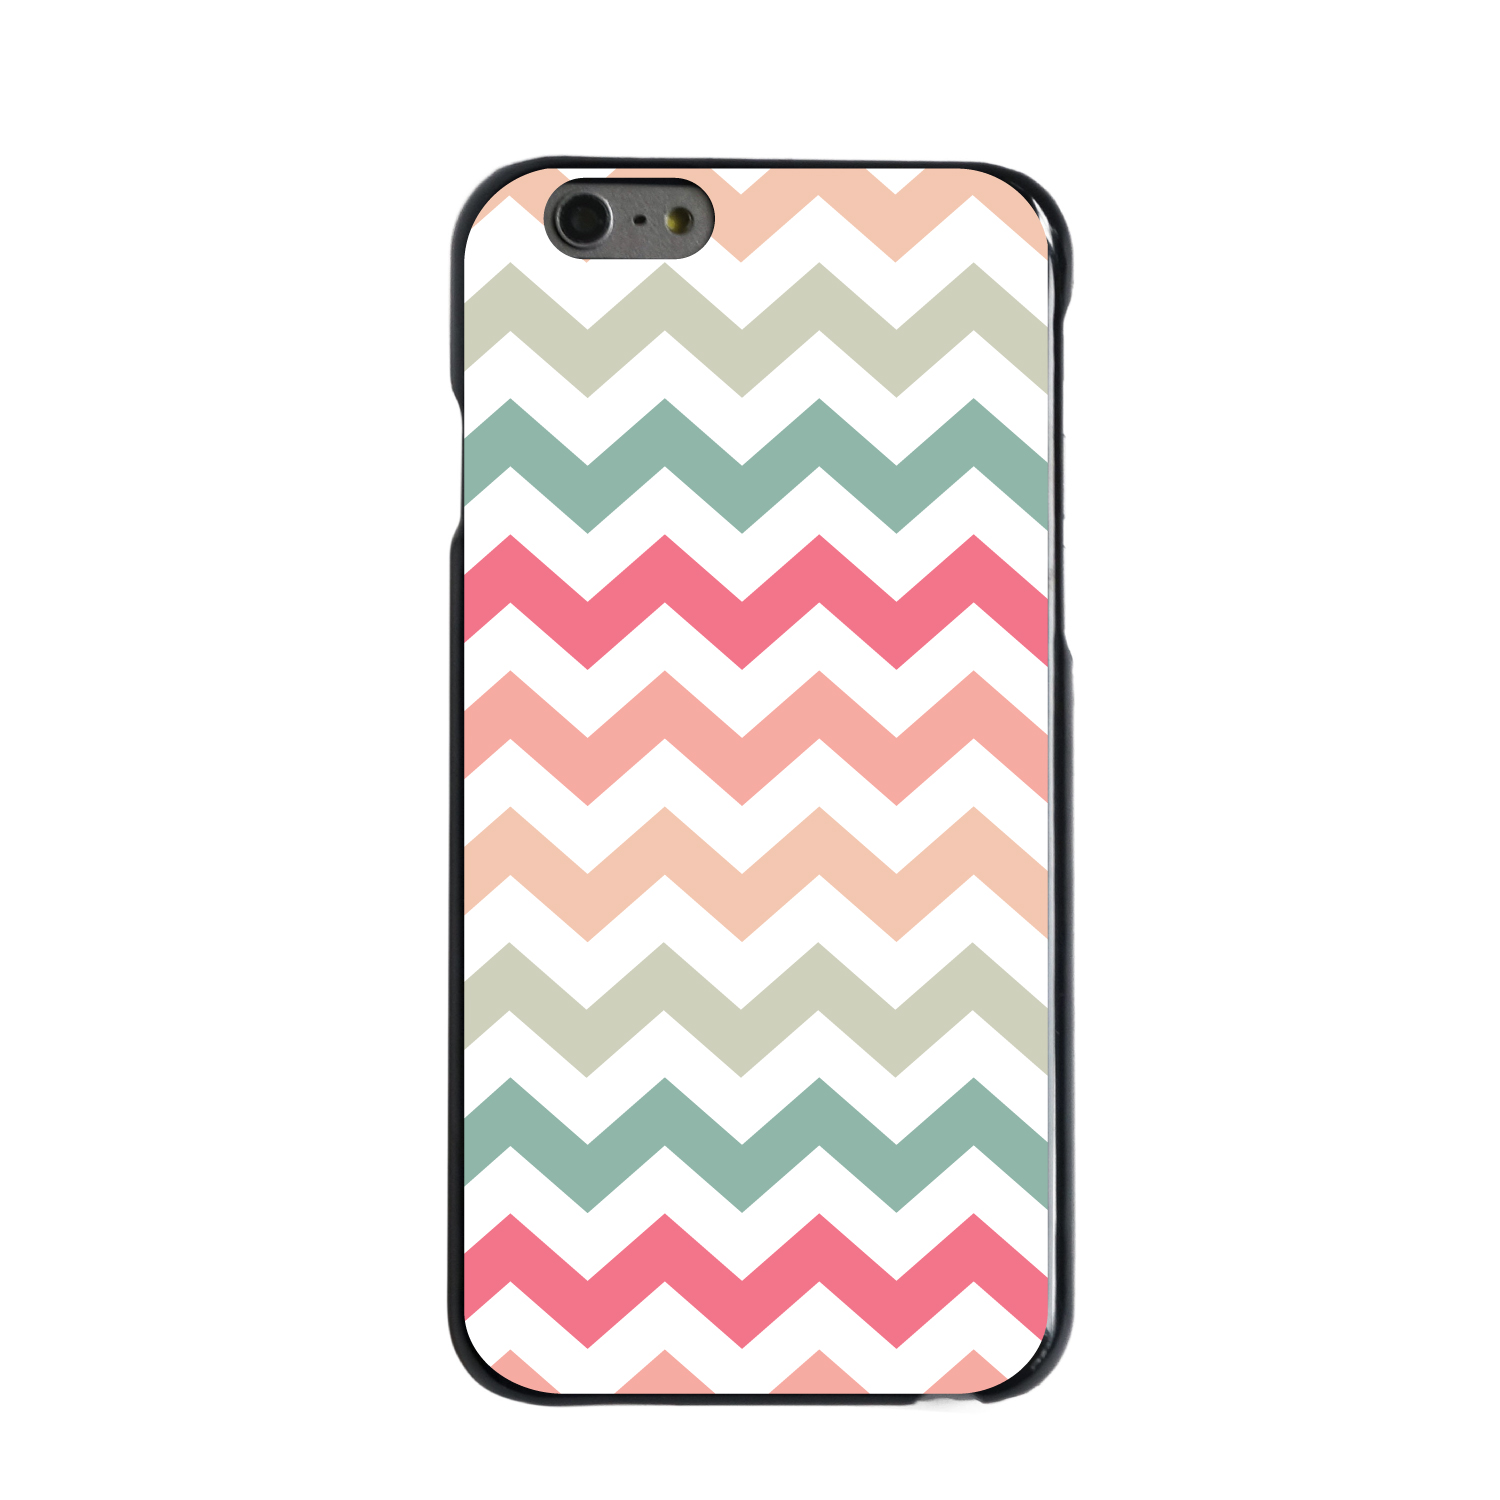 "CUSTOM Black Hard Plastic Snap-On Case for Apple iPhone 6 / 6S (4.7"" Screen) - Pastel Chevron Wave Stripes"